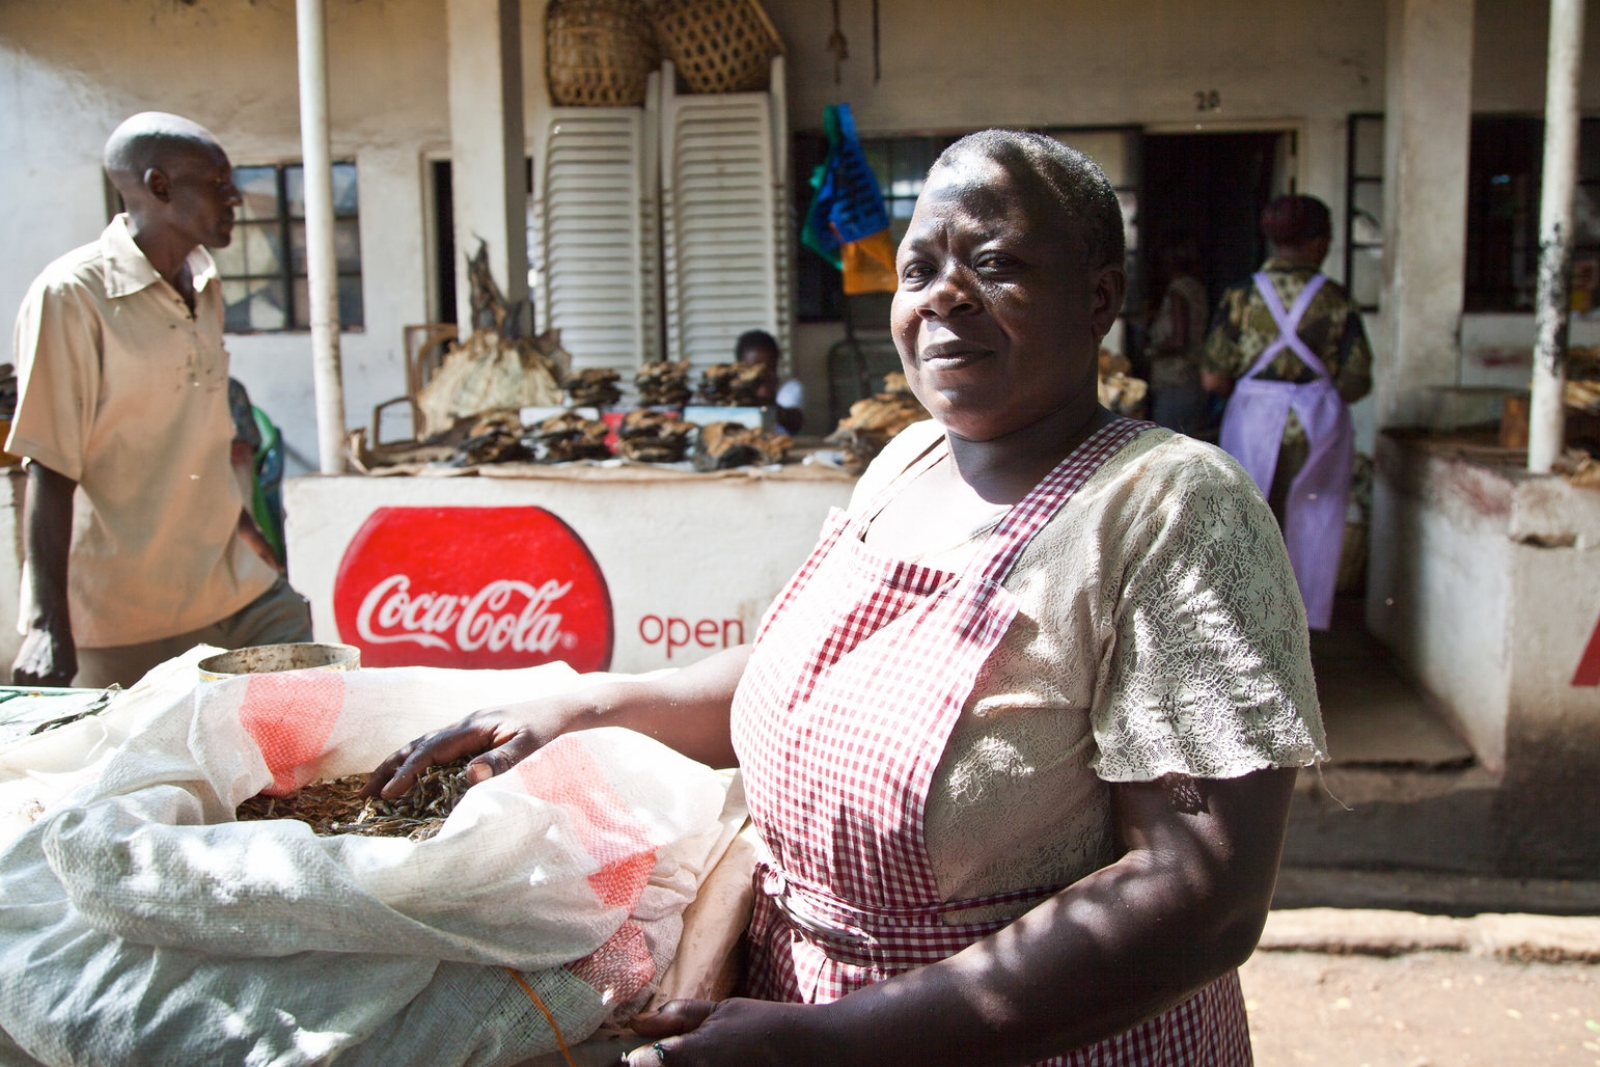 Dorothy  was forcibly relocated from Oile market. After its destruction she found herself at Jubilee market. Dorothy is now supporting thirteen children, many foster children from other family members who have died.